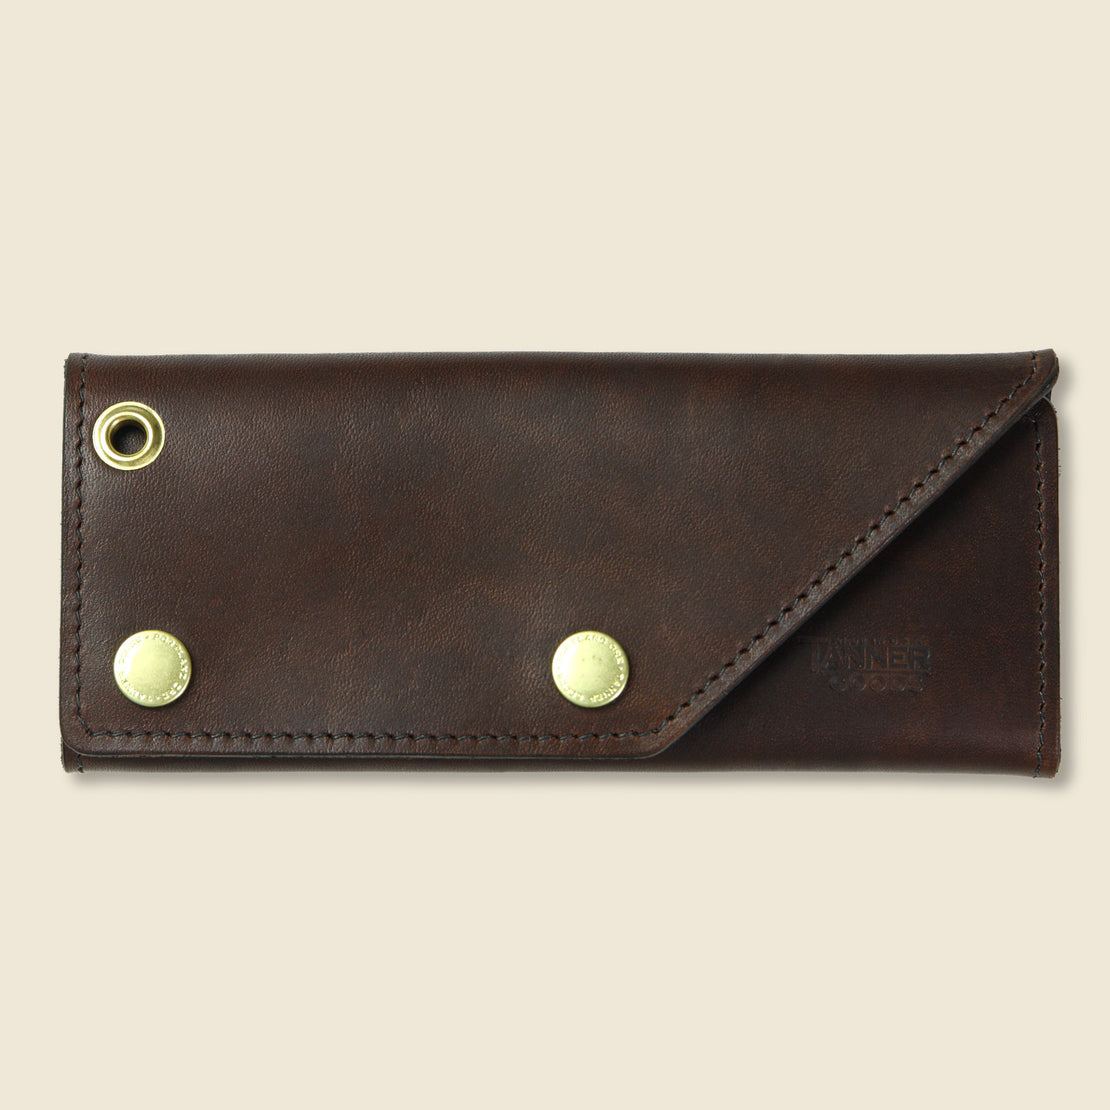 Tanner Workman Wallet - Dark Oak